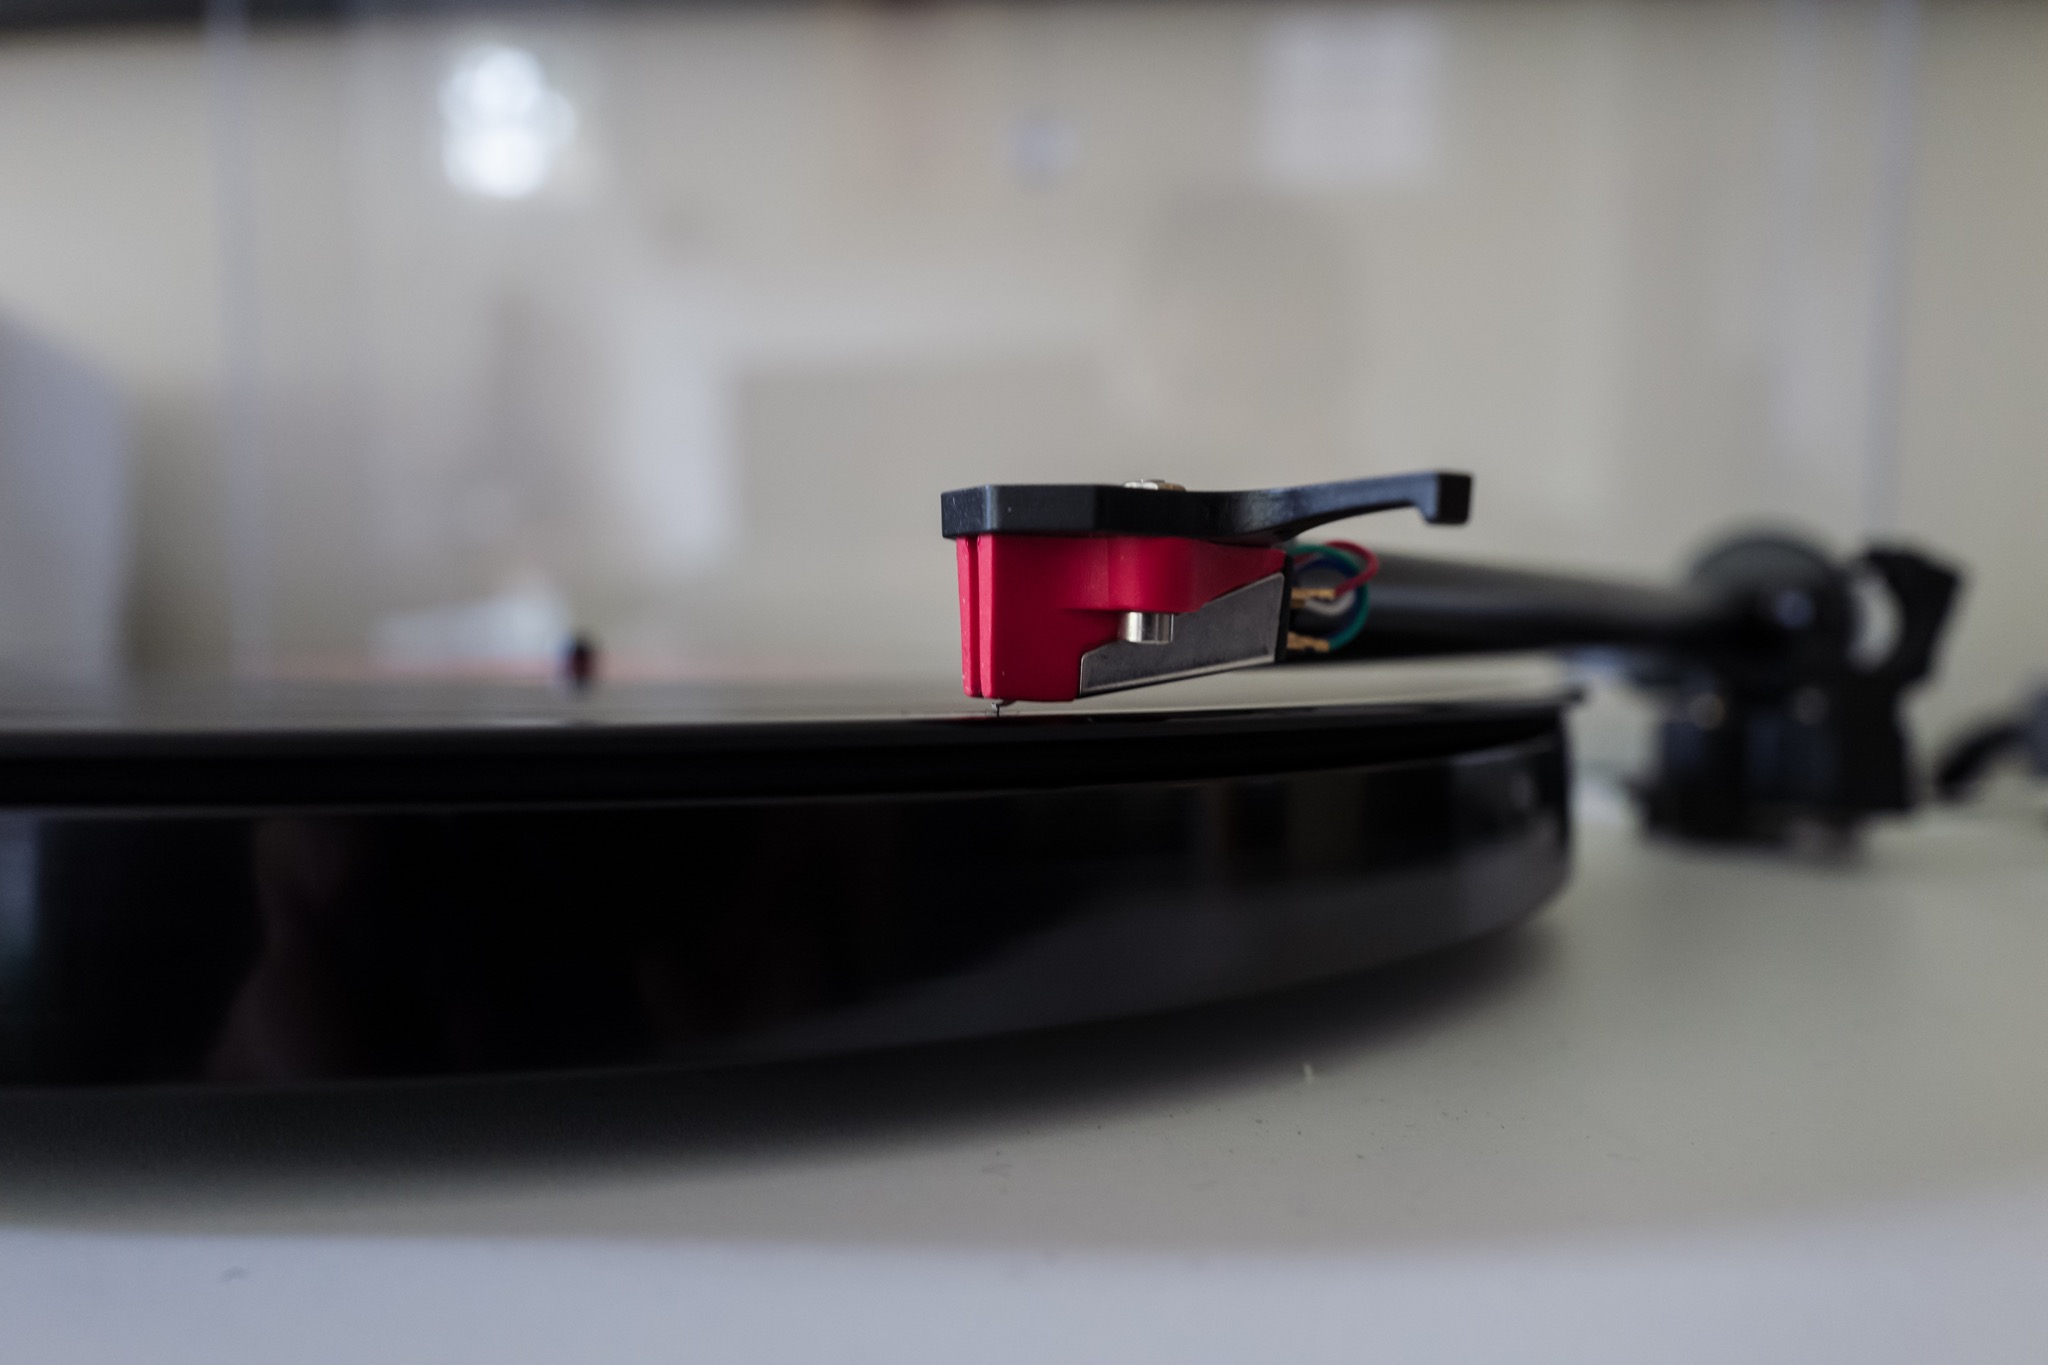 This is the Turntable cartridge. I love this perspective.